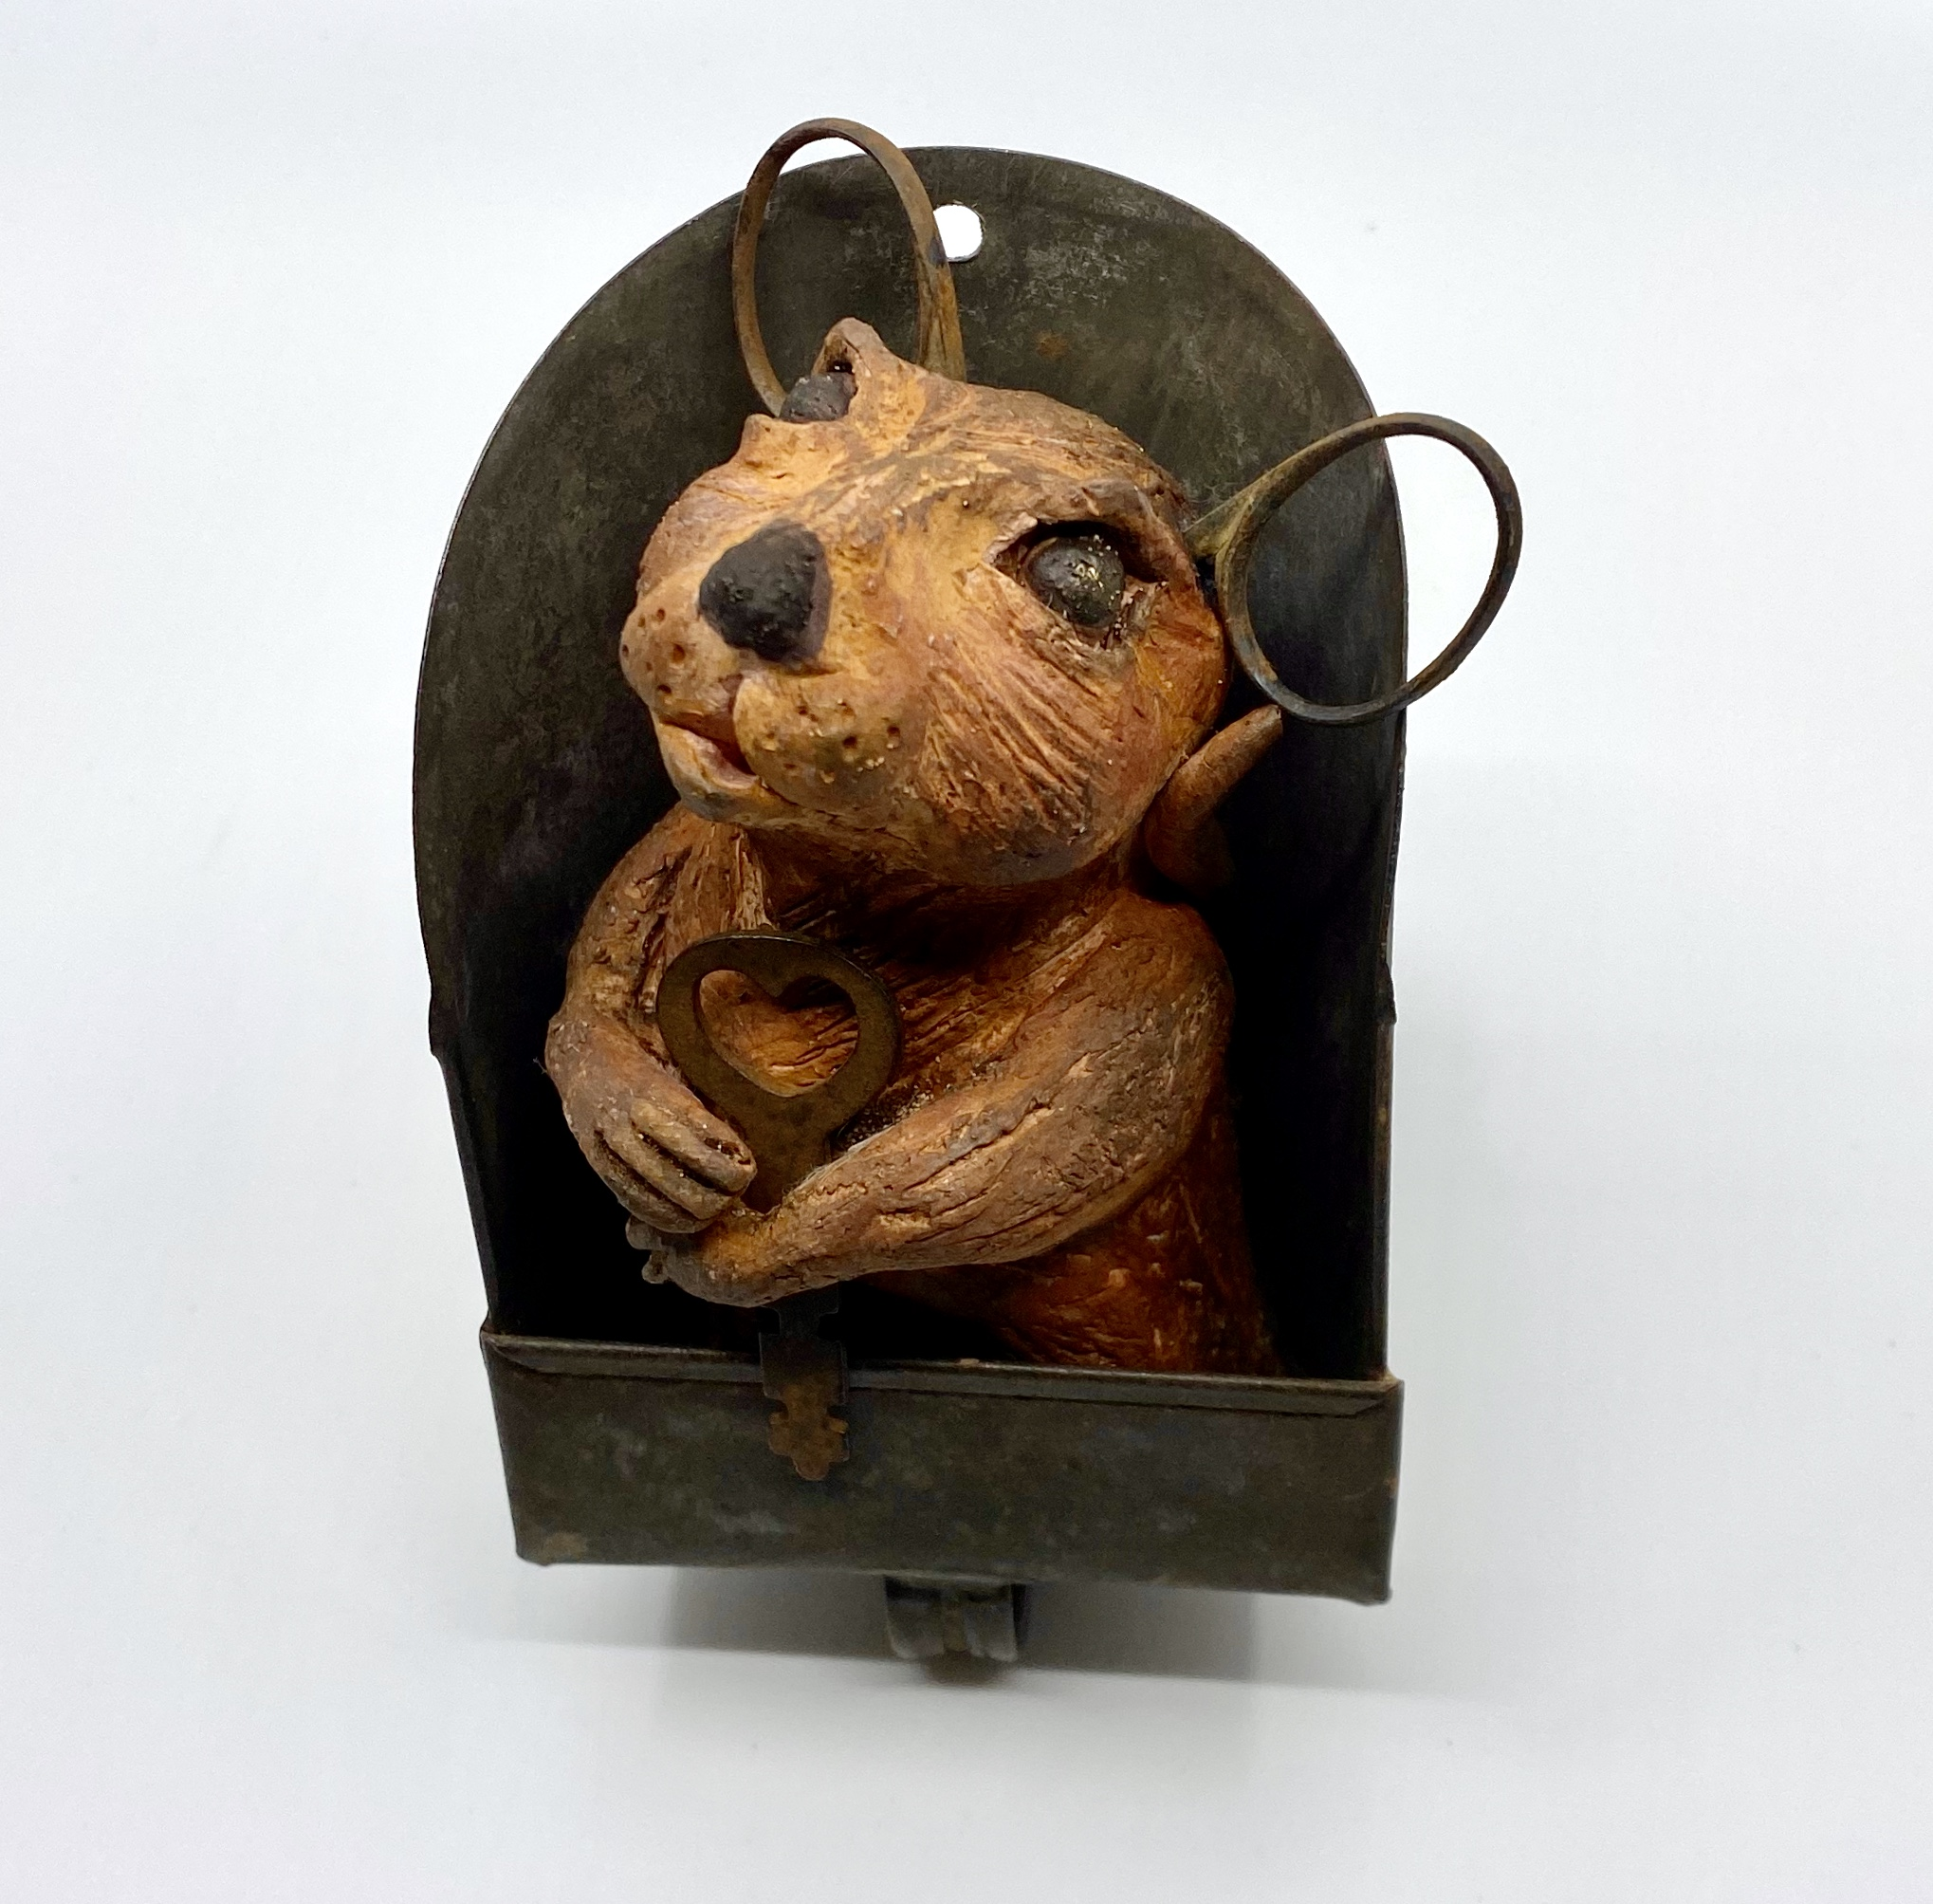 A Mouse in the House - Ceramic/Found Obj